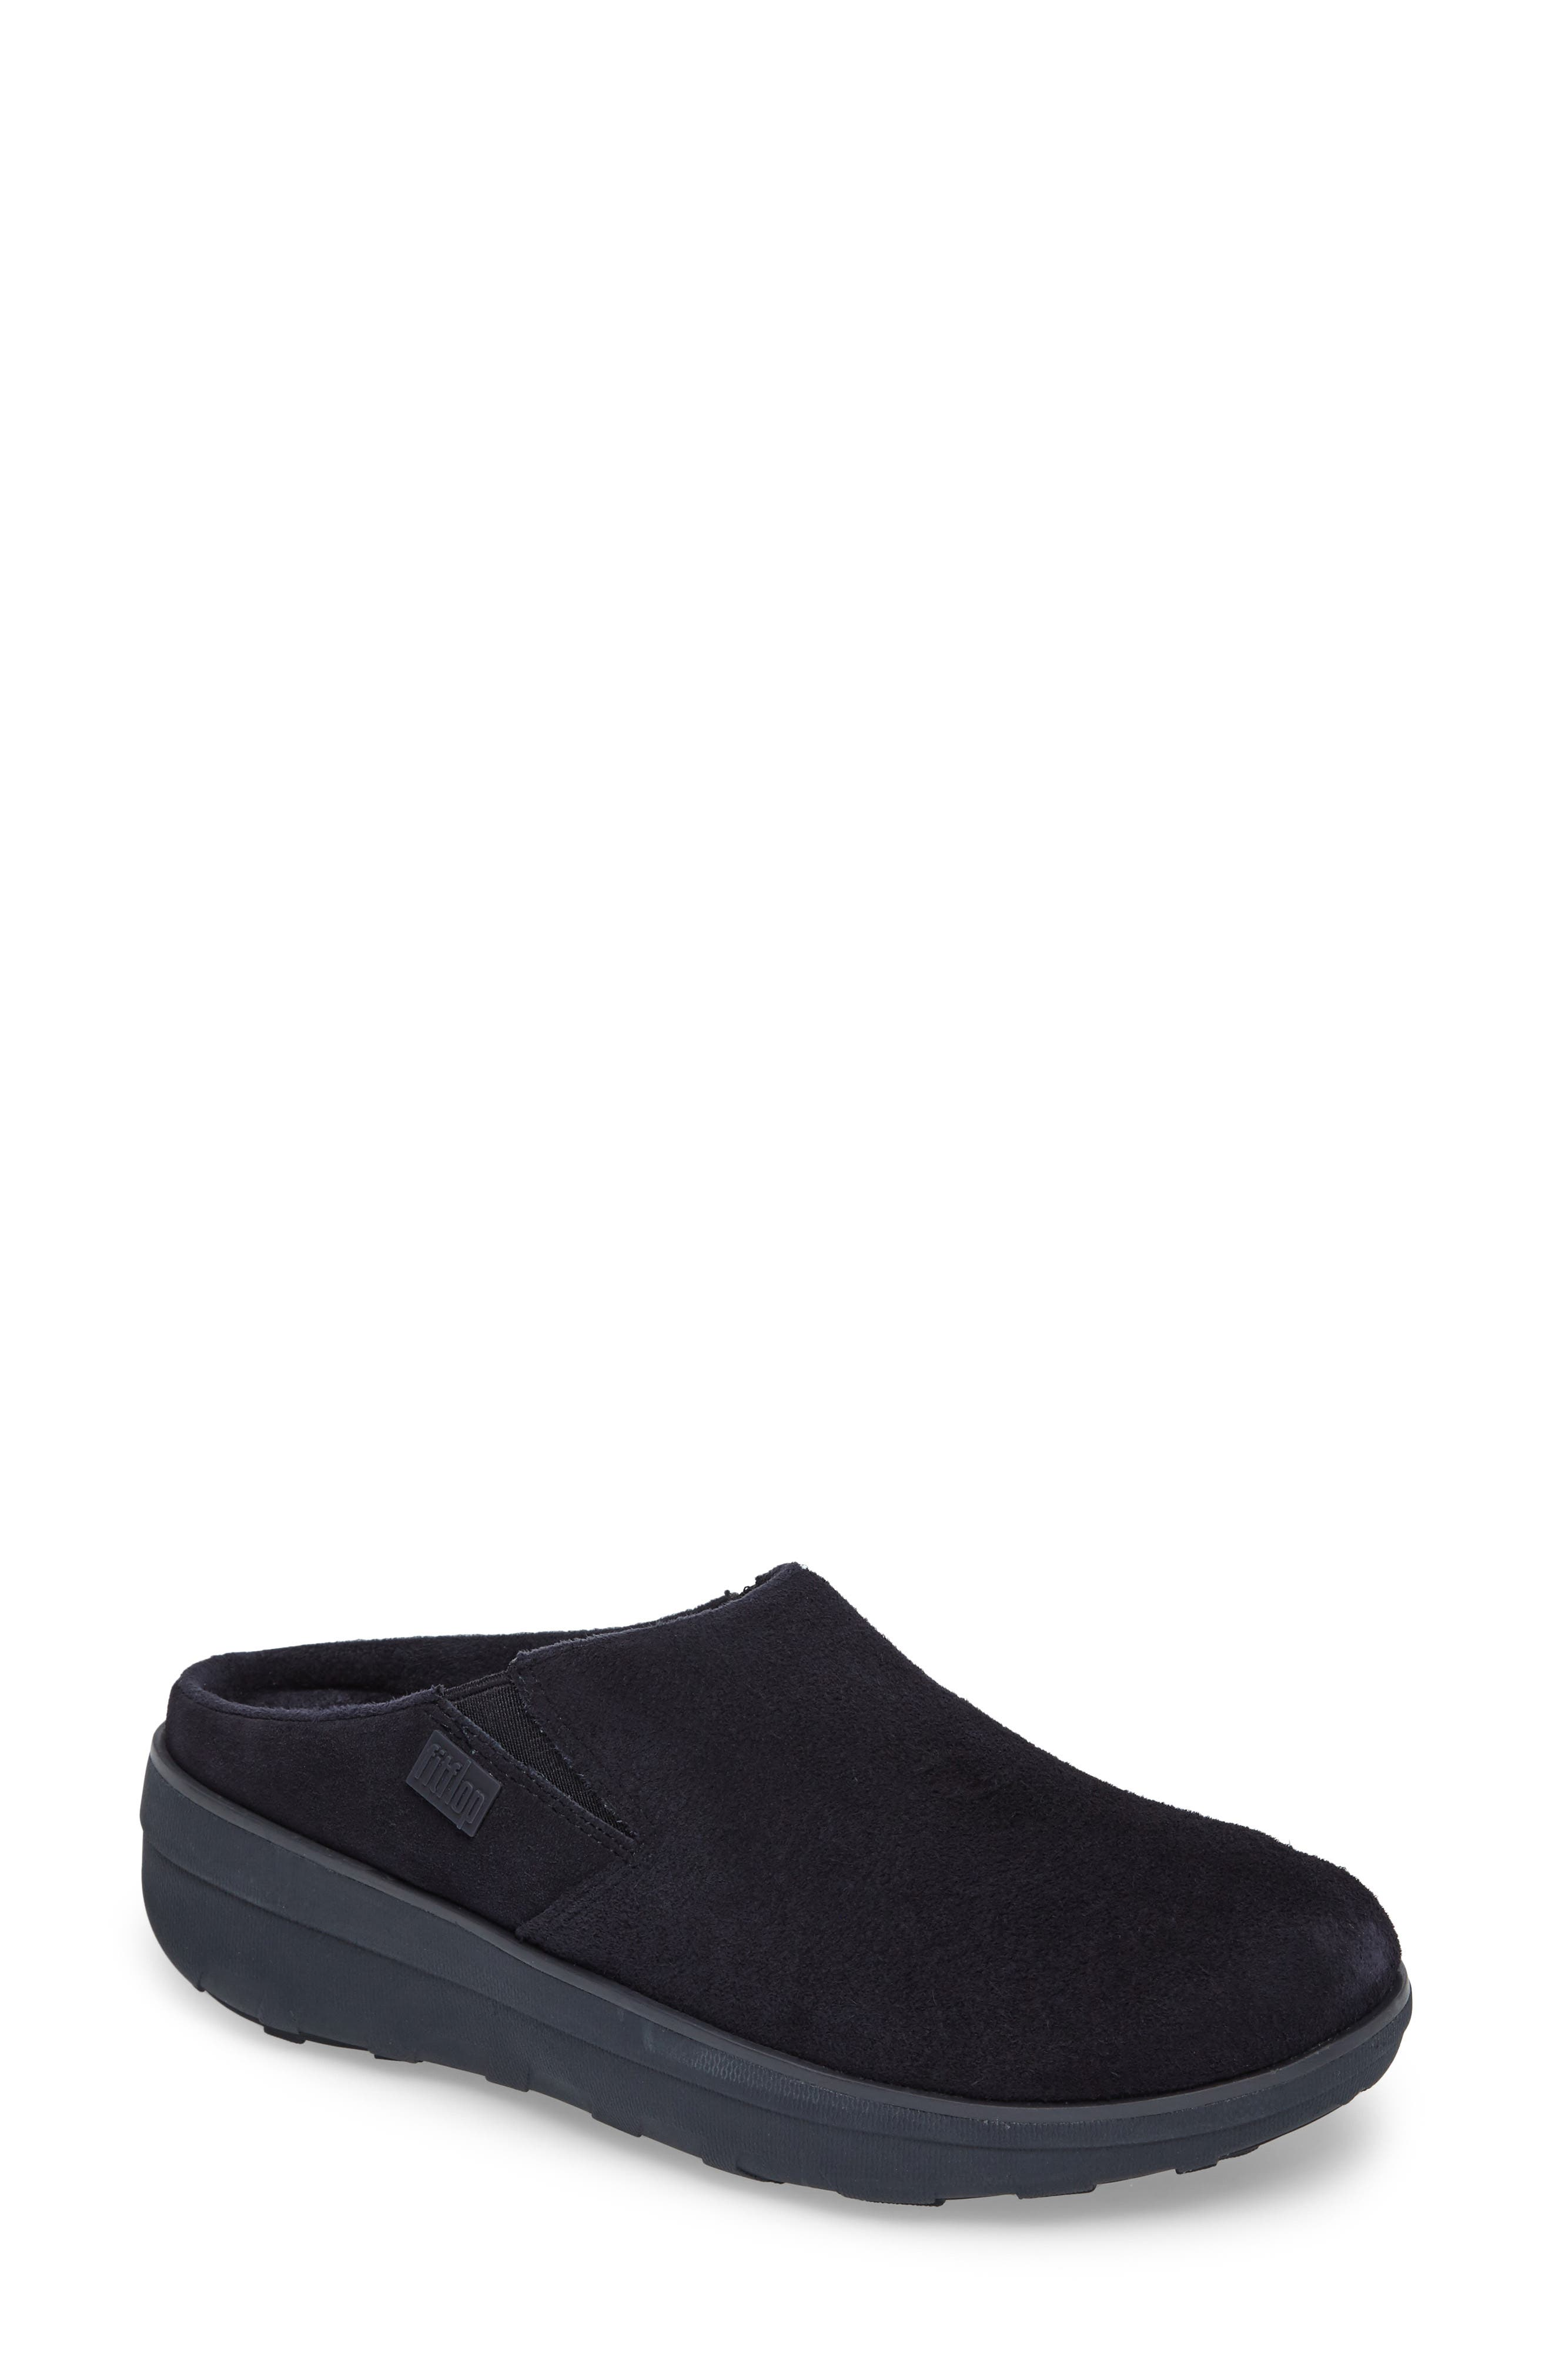 FitFlop 'Loaff' Clog (Women)